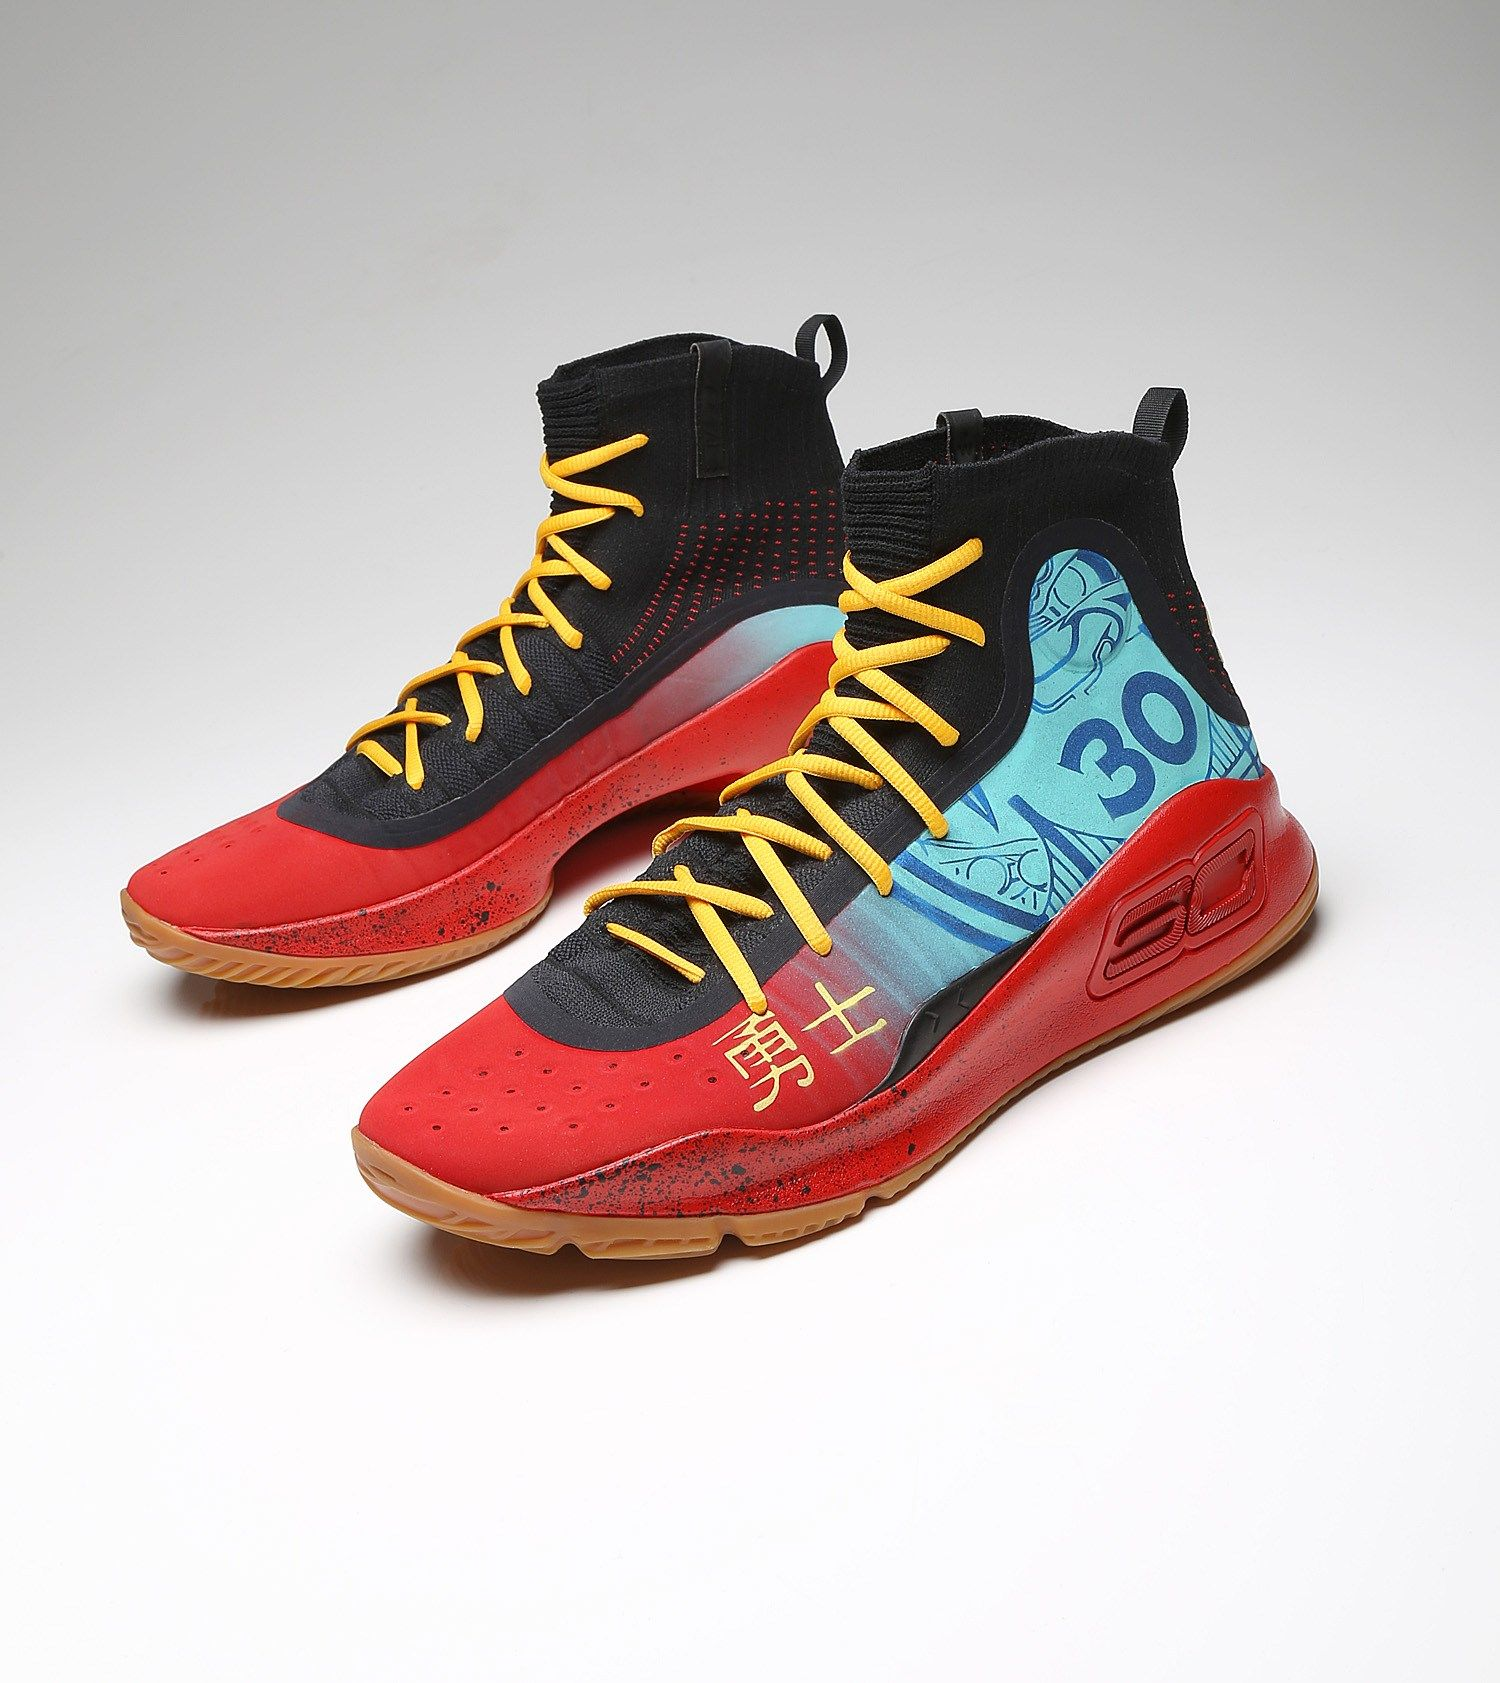 Stephen Curry S Exact Chinese New Year Under Armour Curry 4 In 2020 Kicks Curry 4 Stephen Curry